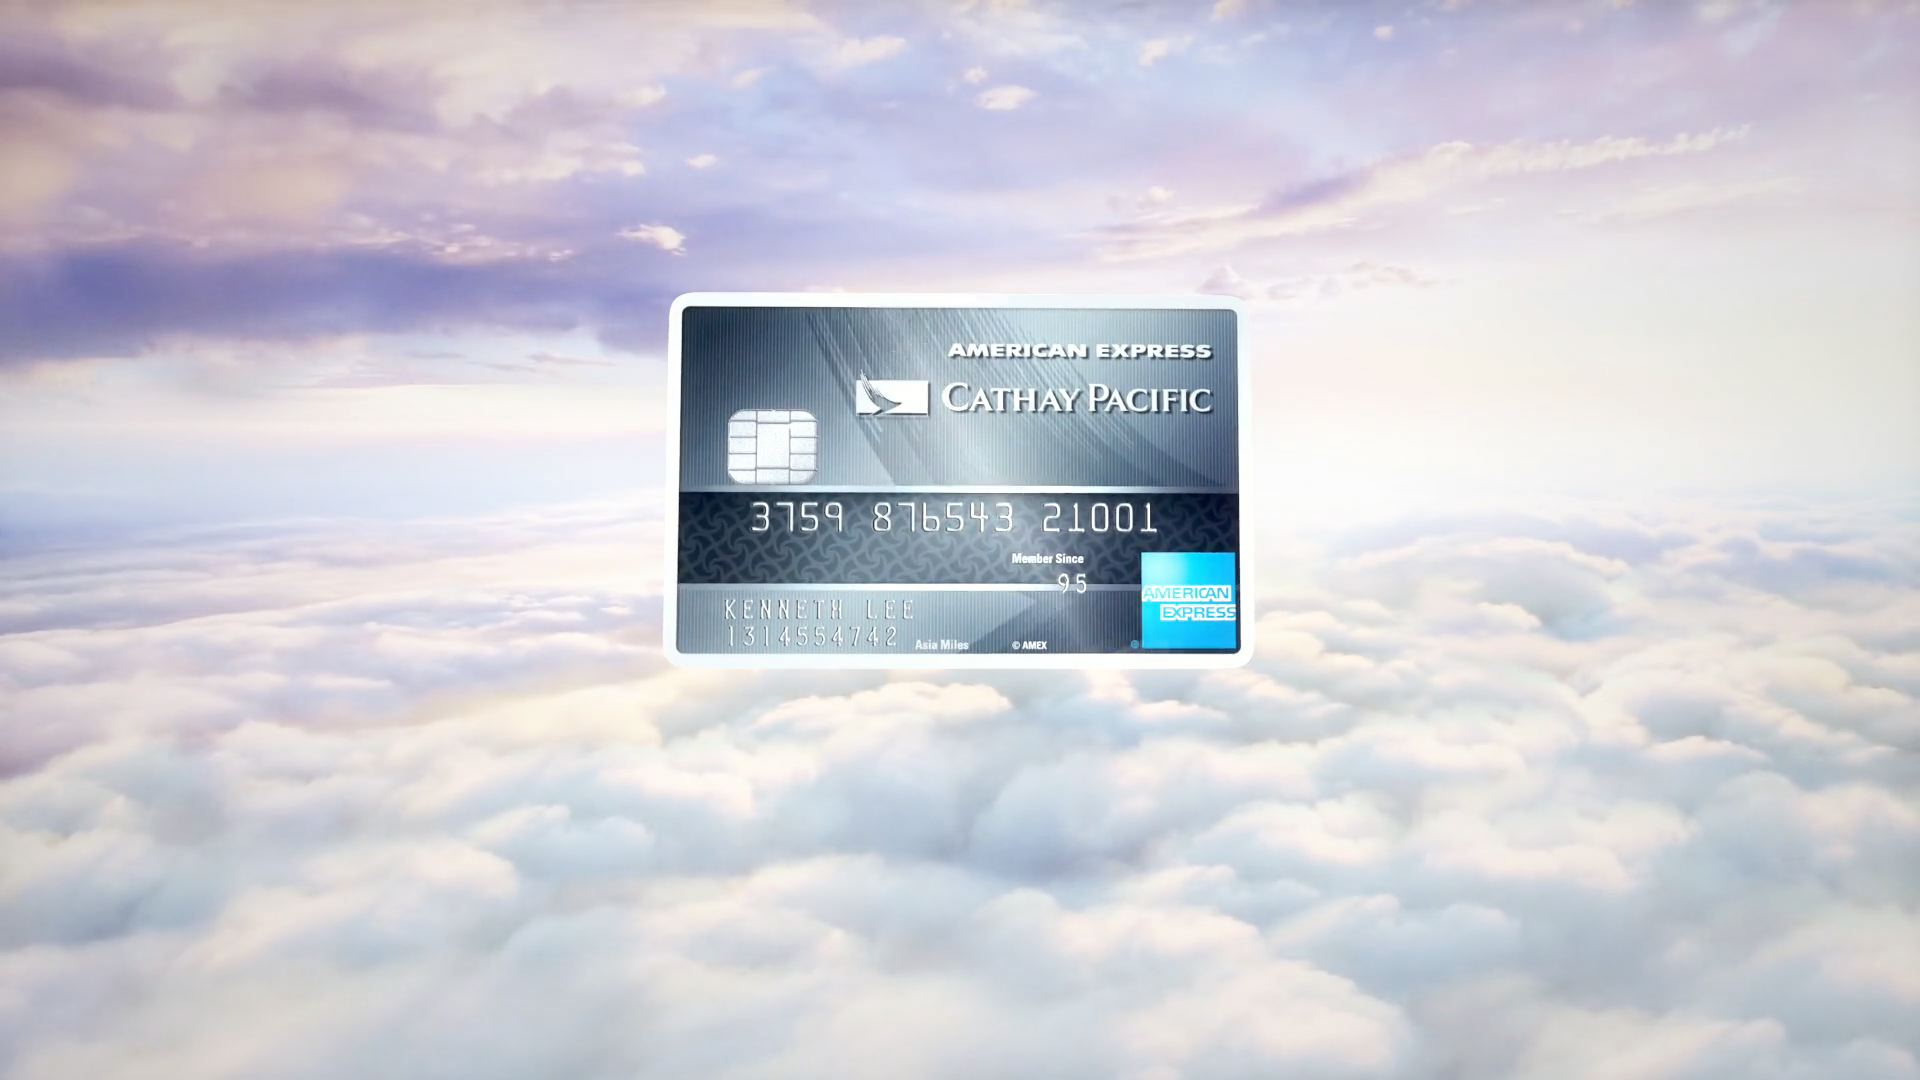 American Express credit card above clouds